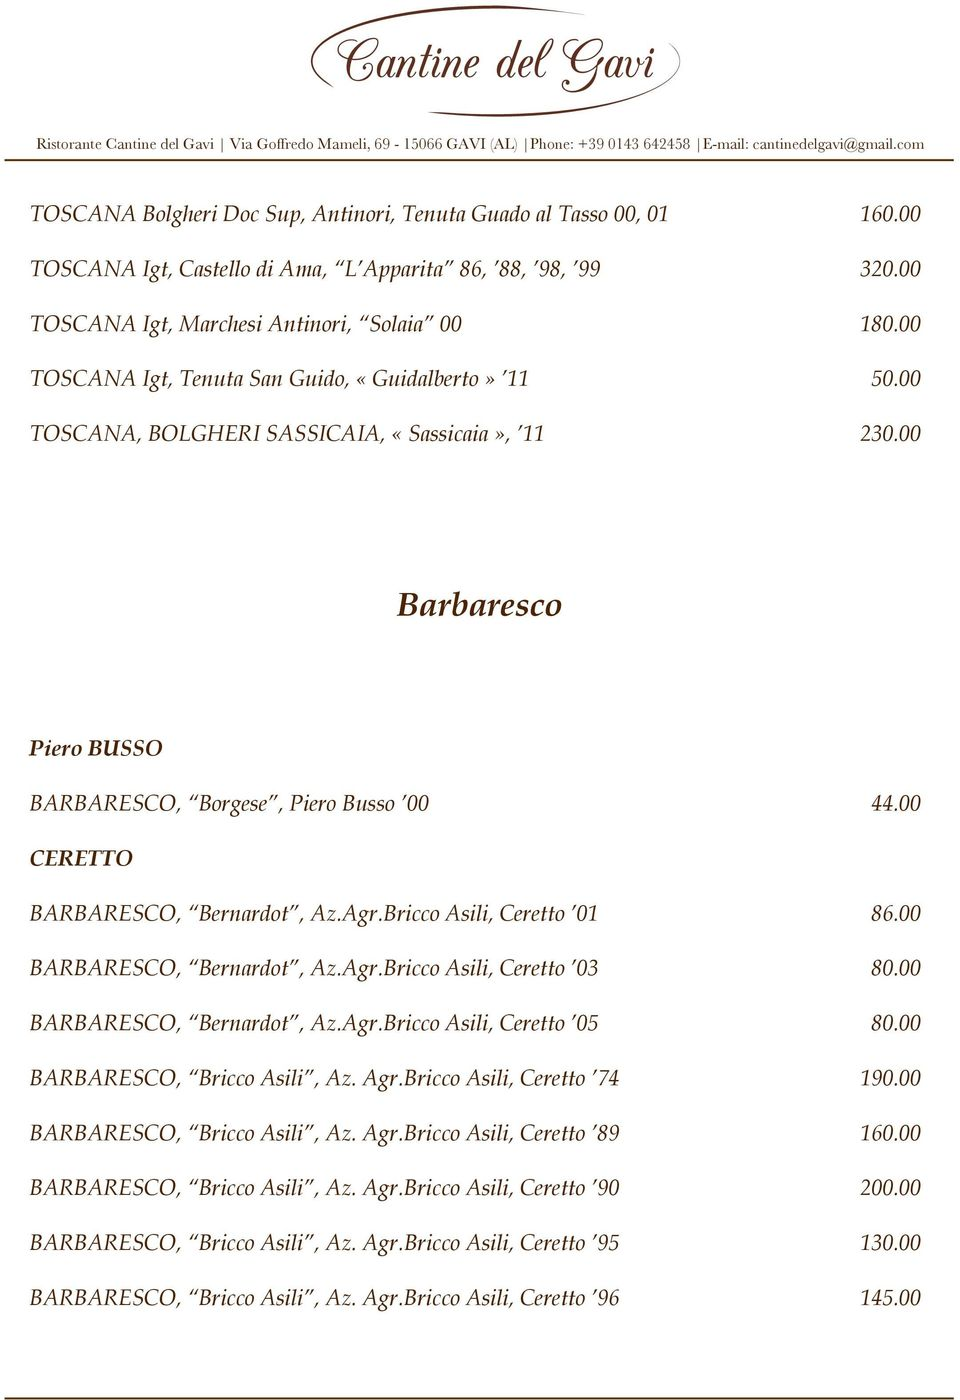 00 CERETTO BARBARESCO, Bernardot, Az.Agr.Bricco Asili, Ceretto 01 86.00 BARBARESCO, Bernardot, Az.Agr.Bricco Asili, Ceretto 03 80.00 BARBARESCO, Bernardot, Az.Agr.Bricco Asili, Ceretto 05 80.